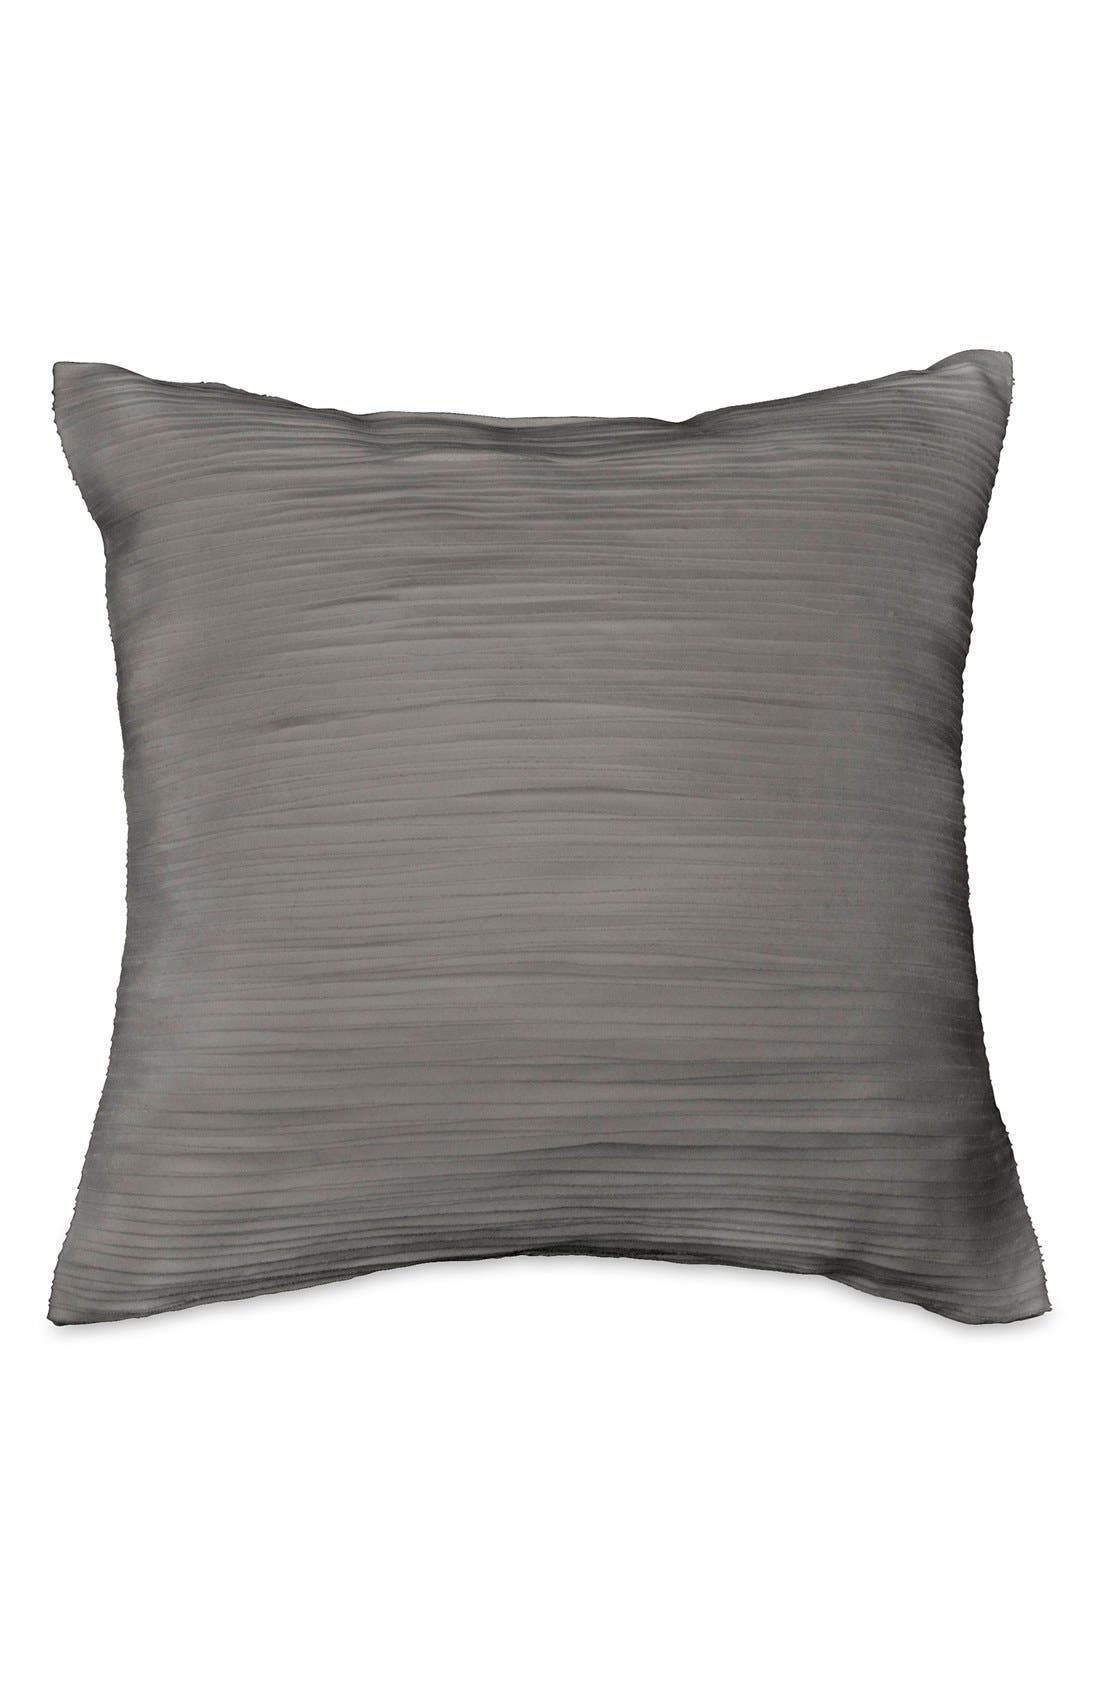 Donna Karan Collection 'Silk Essentials' Pillow,                         Main,                         color,